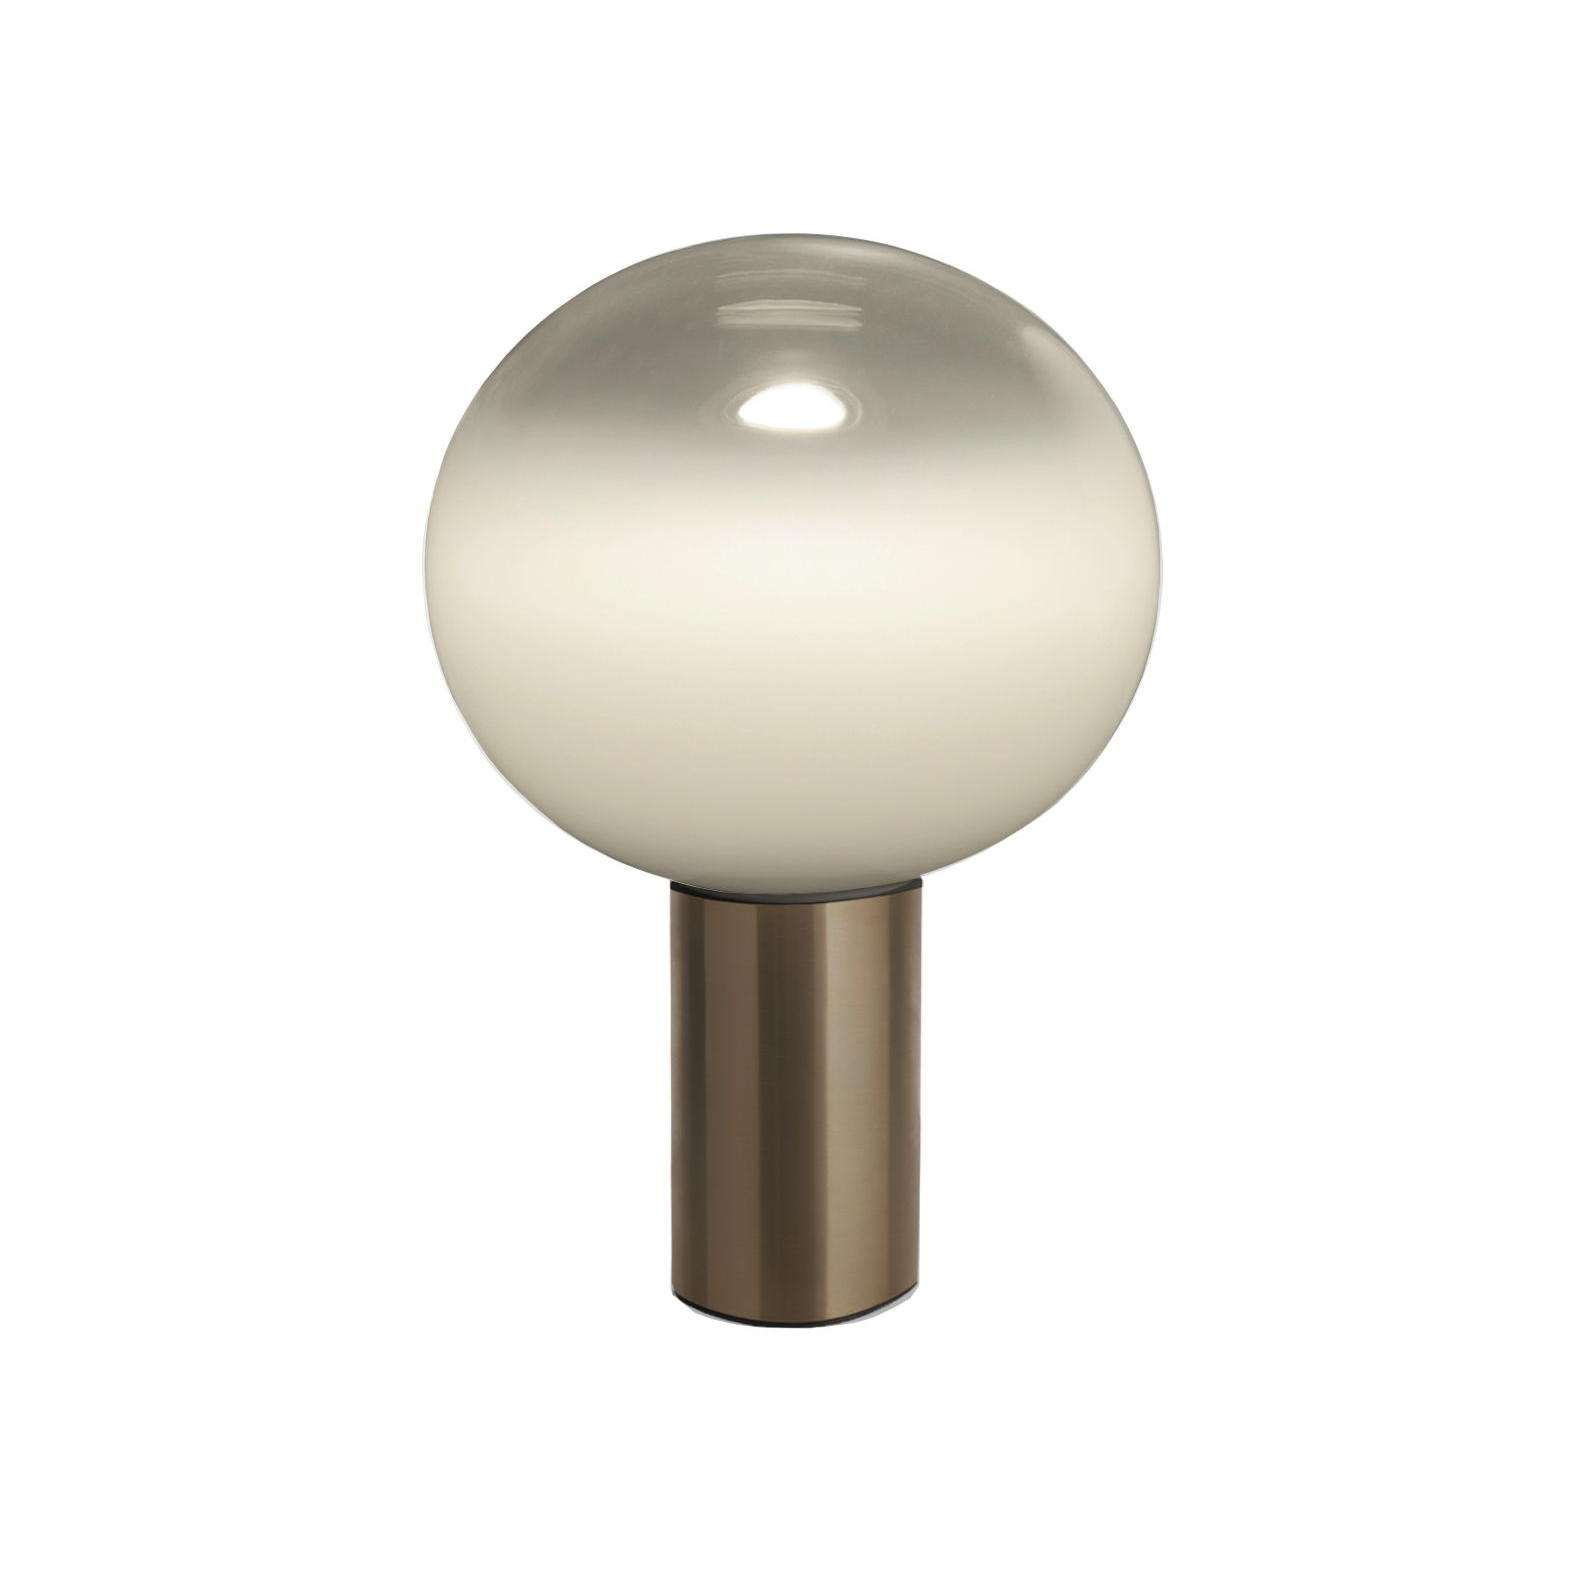 Lampe Artemide Table Lamp Laguna Tavolo Smoked Transparent Satin Bronze Dimmable Ø26cm H38 3cm Artemide